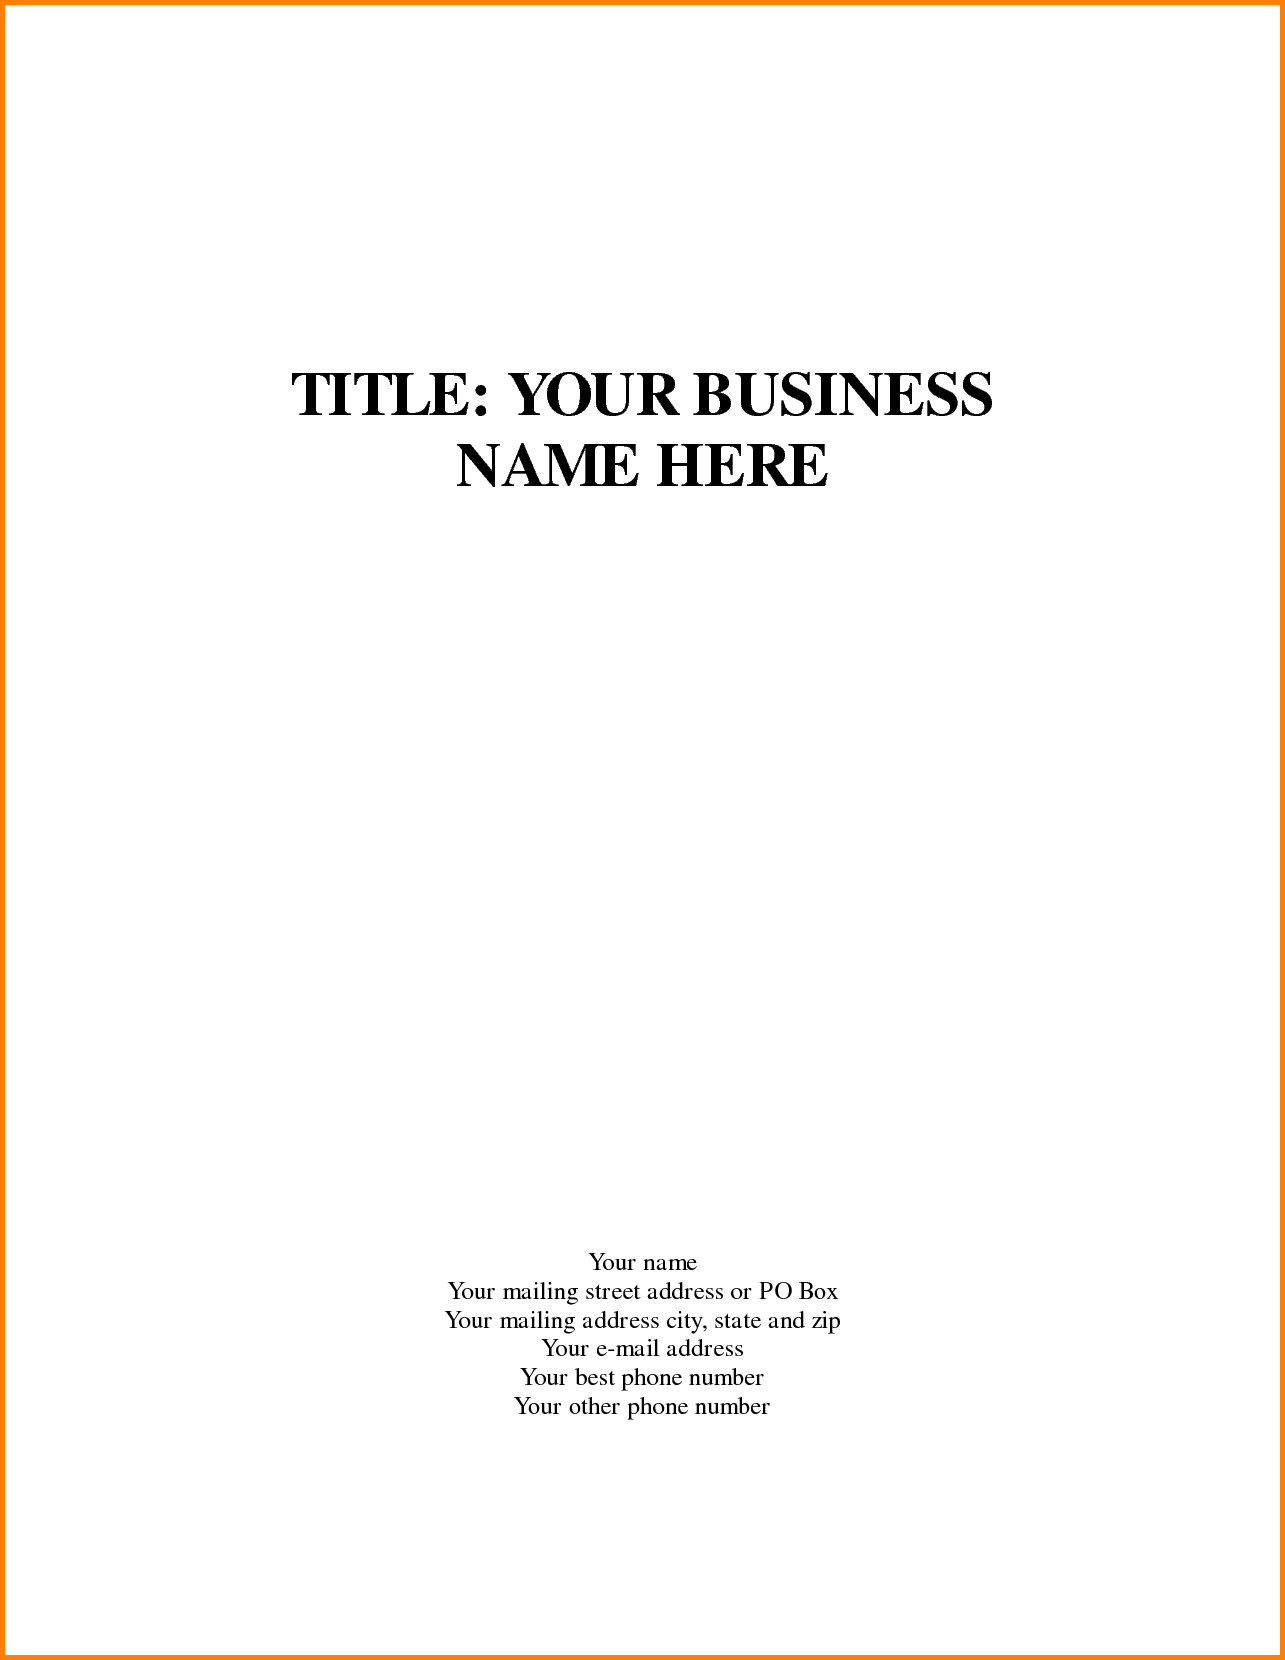 Business Title Page Template Quote Templates Apa Essay Help With With Regard To Business Plan Title Page Template